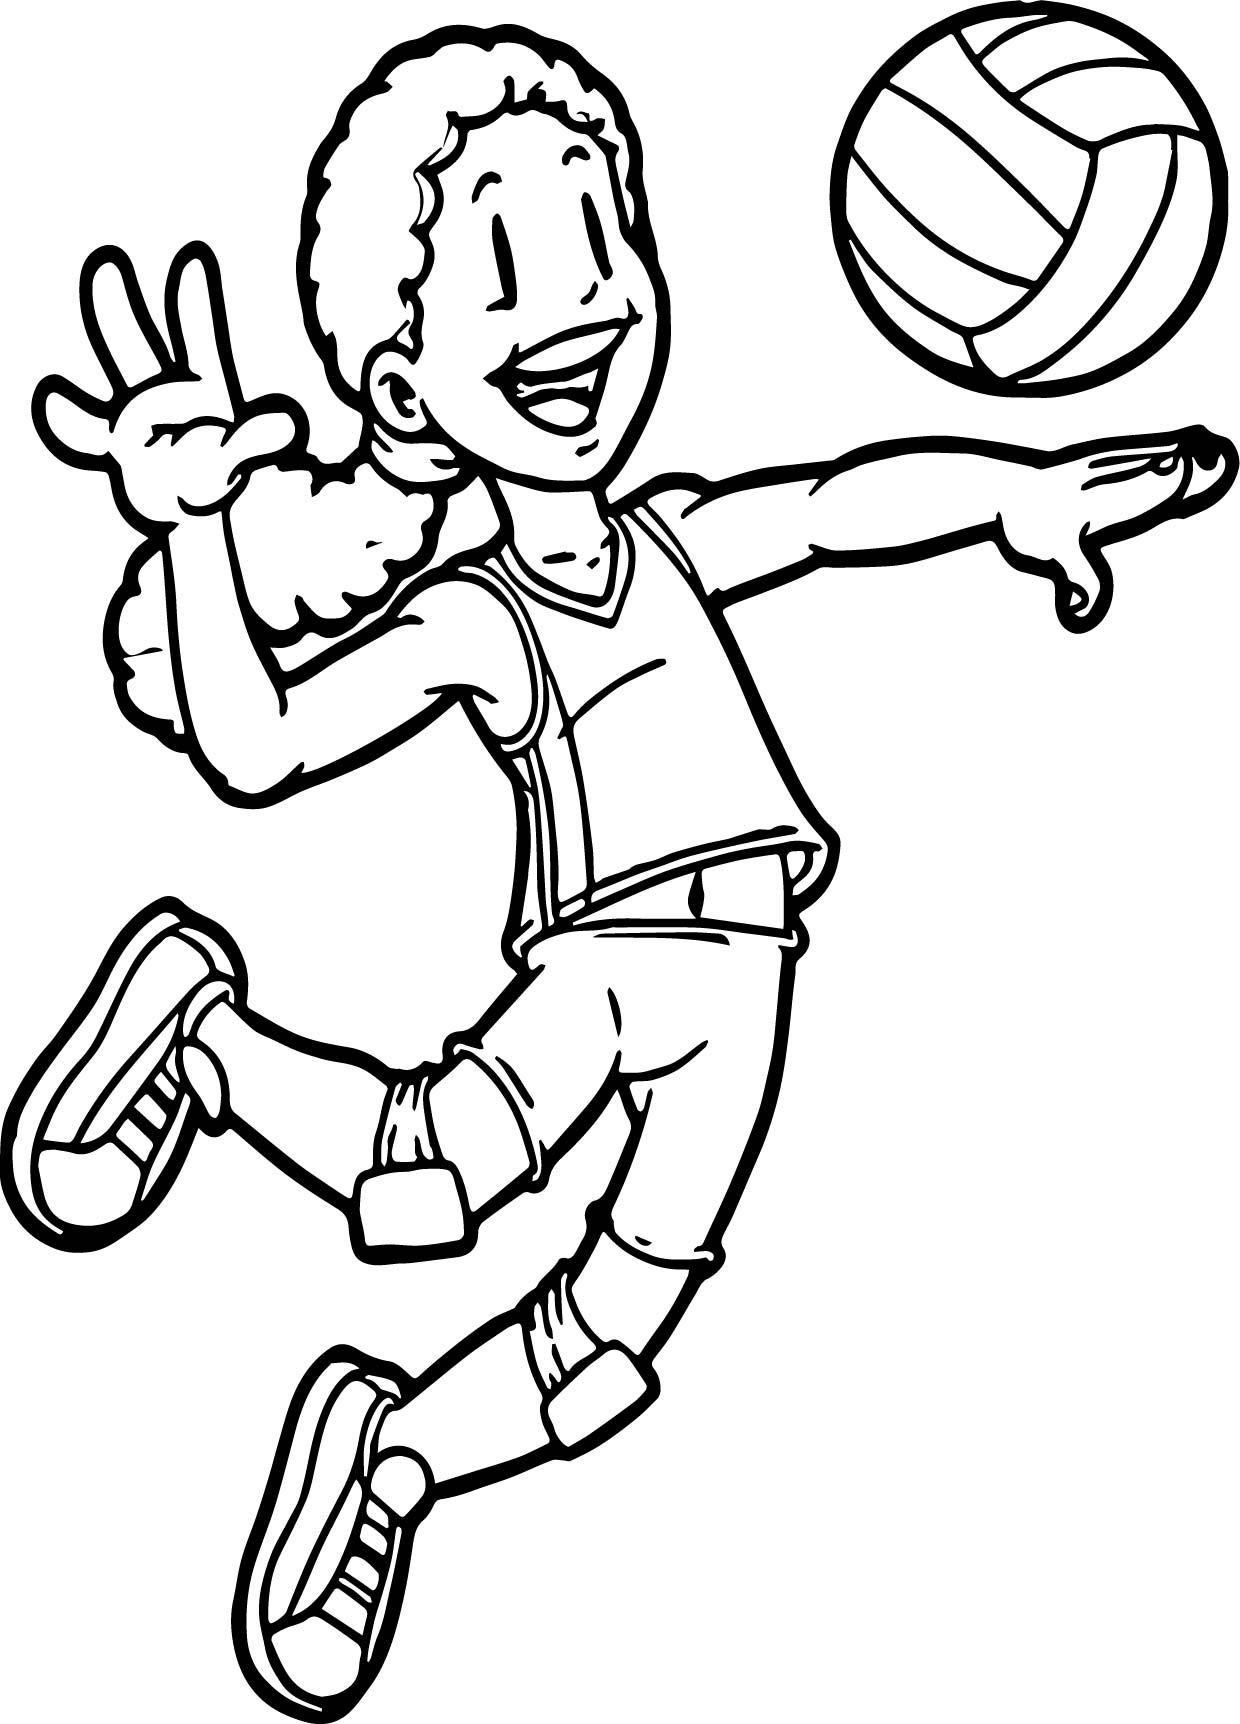 1240x1724 Volleyball Outline Coloring Pages Sports Printable Adult Beach